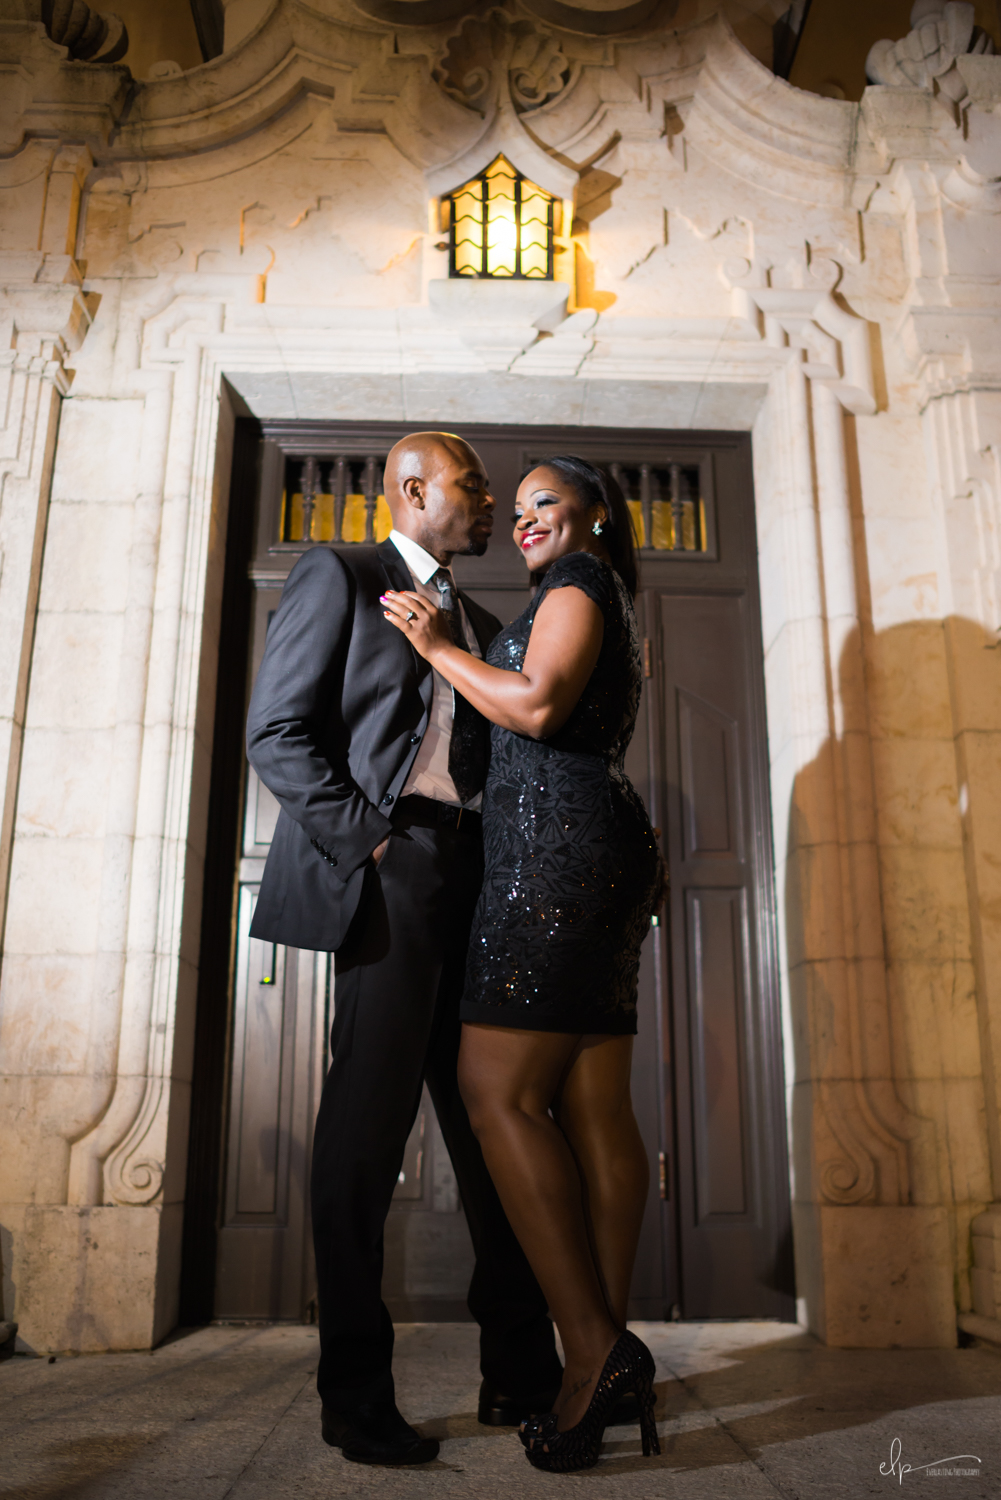 Engagement photography session locations in rollins college